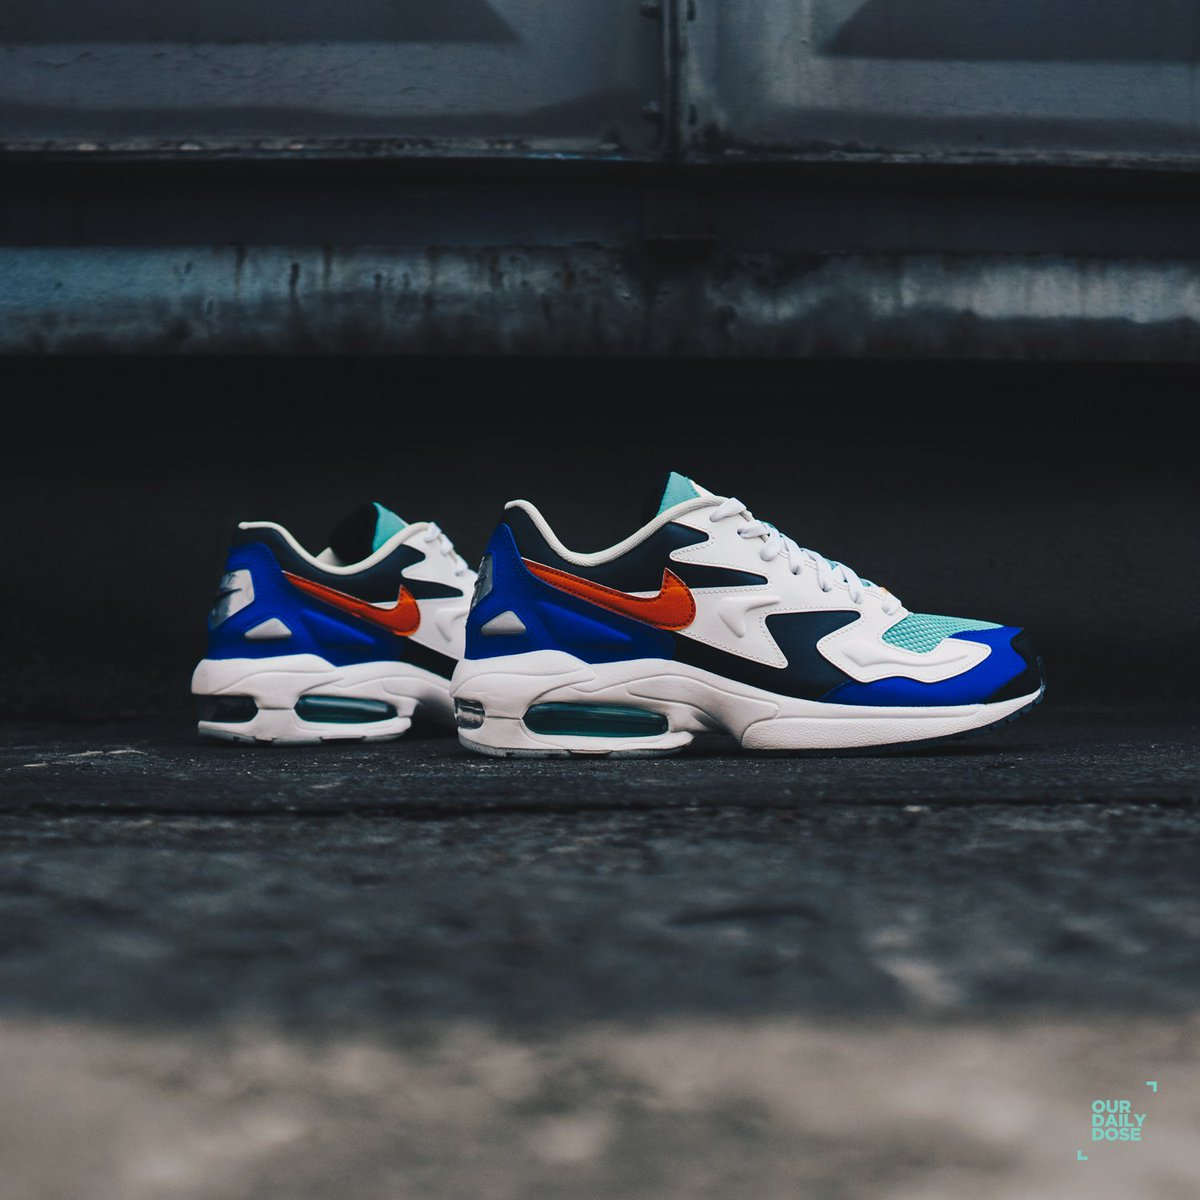 detailed look 7d15d a658e Cop your Nike Air Max 2 Light only at